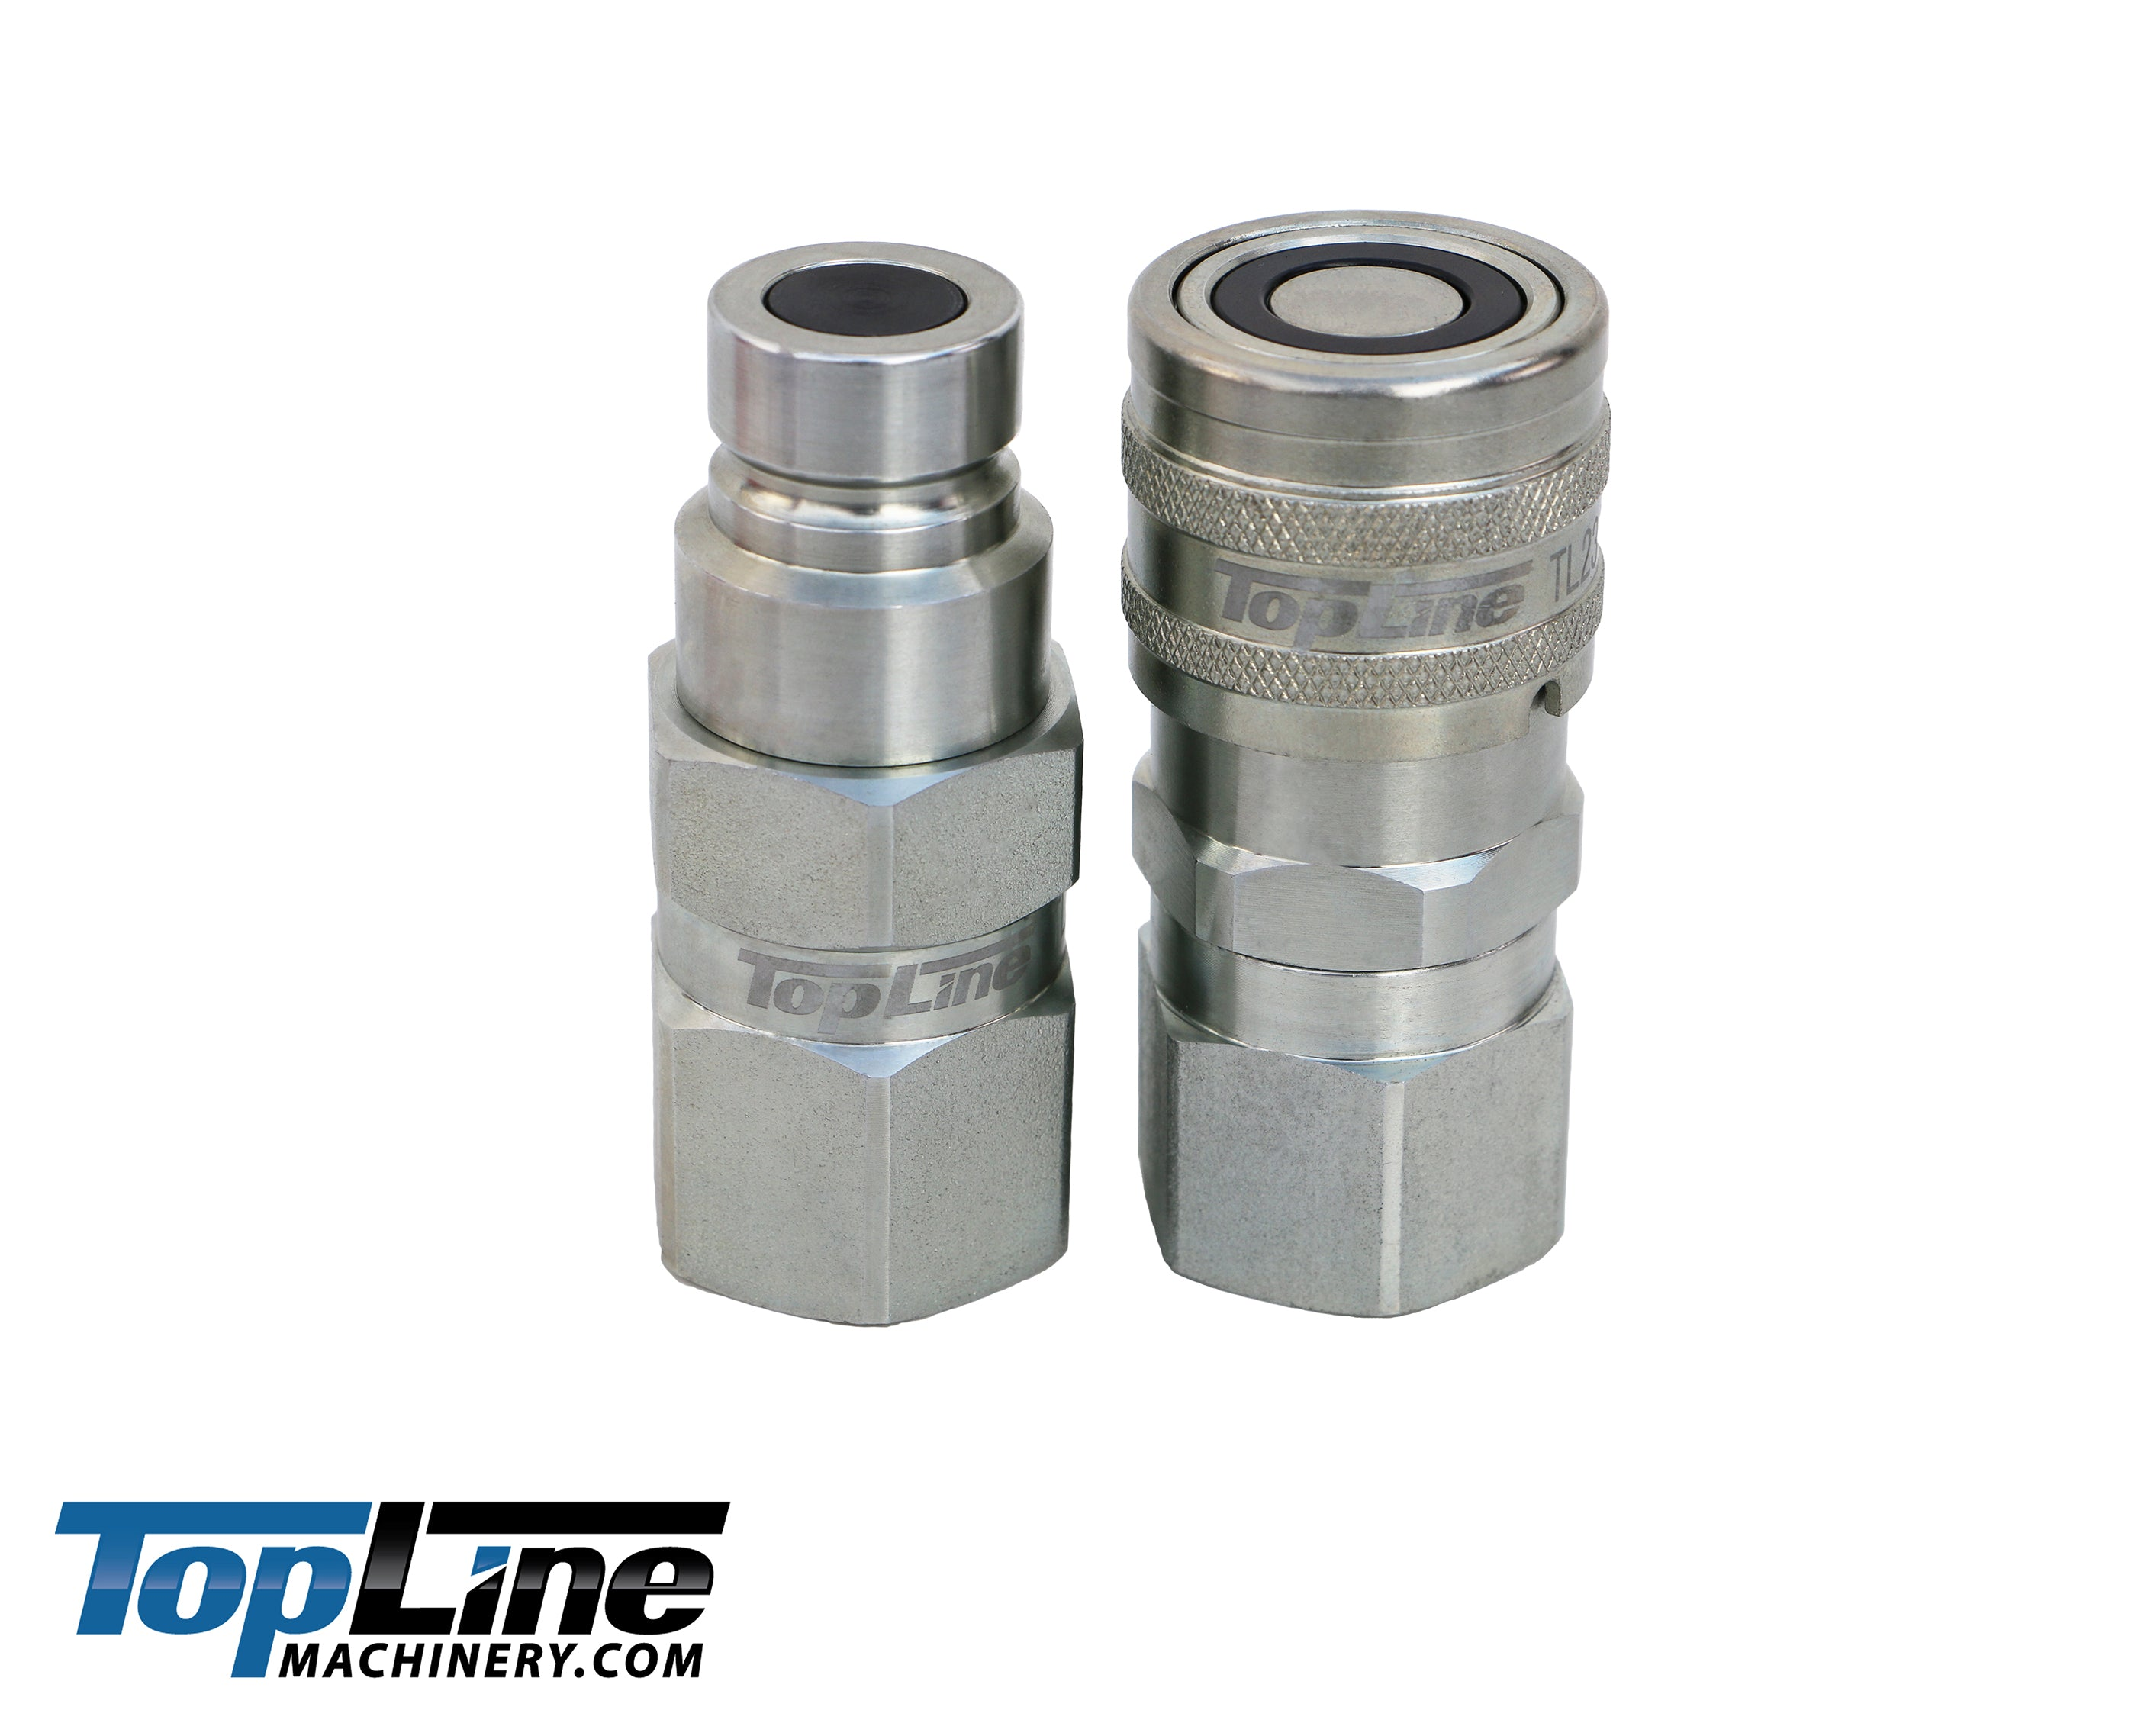 2 Sets 1//2 NPT Flat Face Hydraulic Quick Connect Couplers Set Compatible with Skid Steer Bobcat